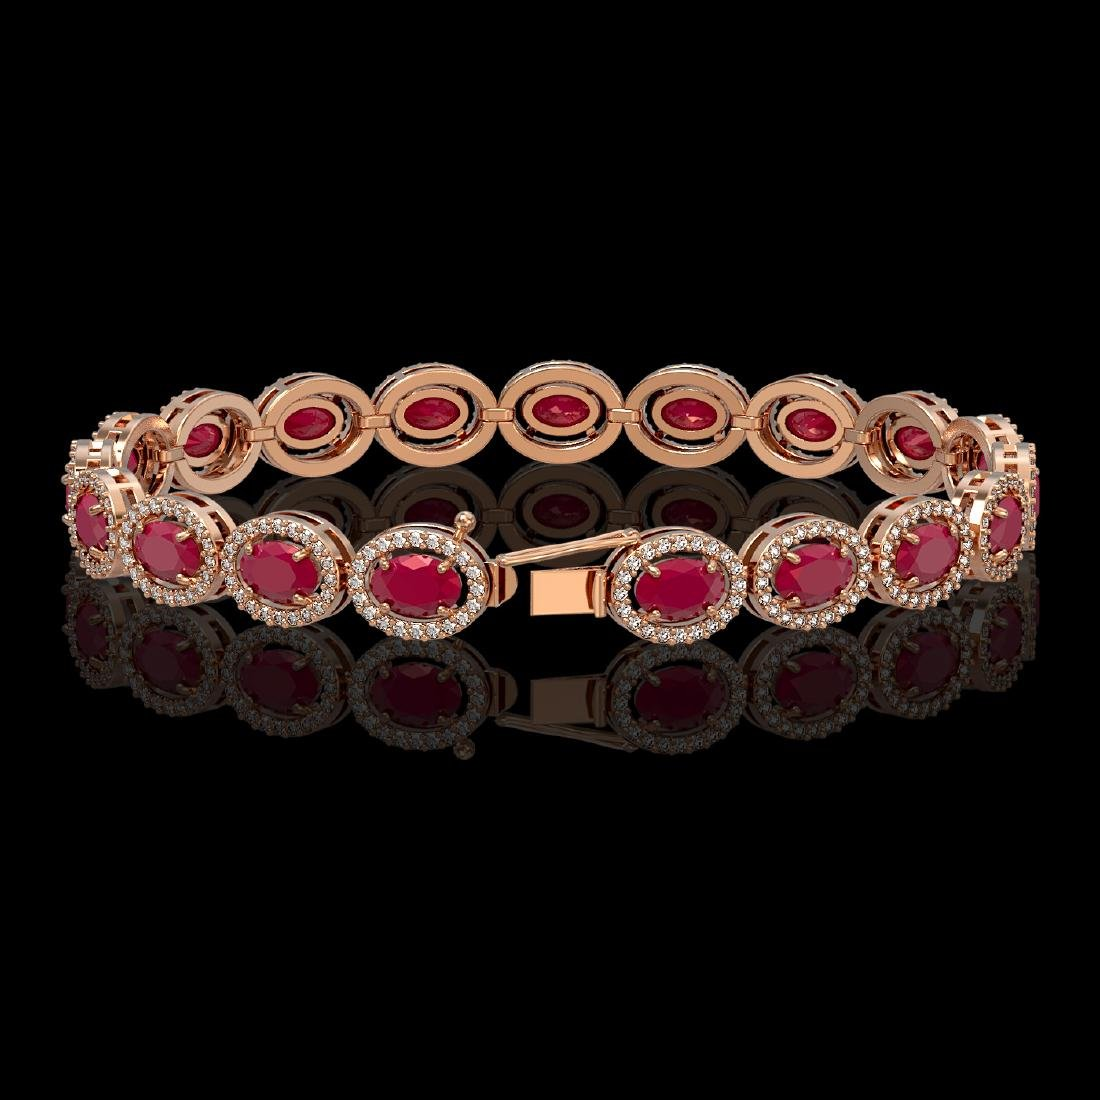 15.2 CTW Ruby & Diamond Halo Bracelet 10K Rose Gold - 2